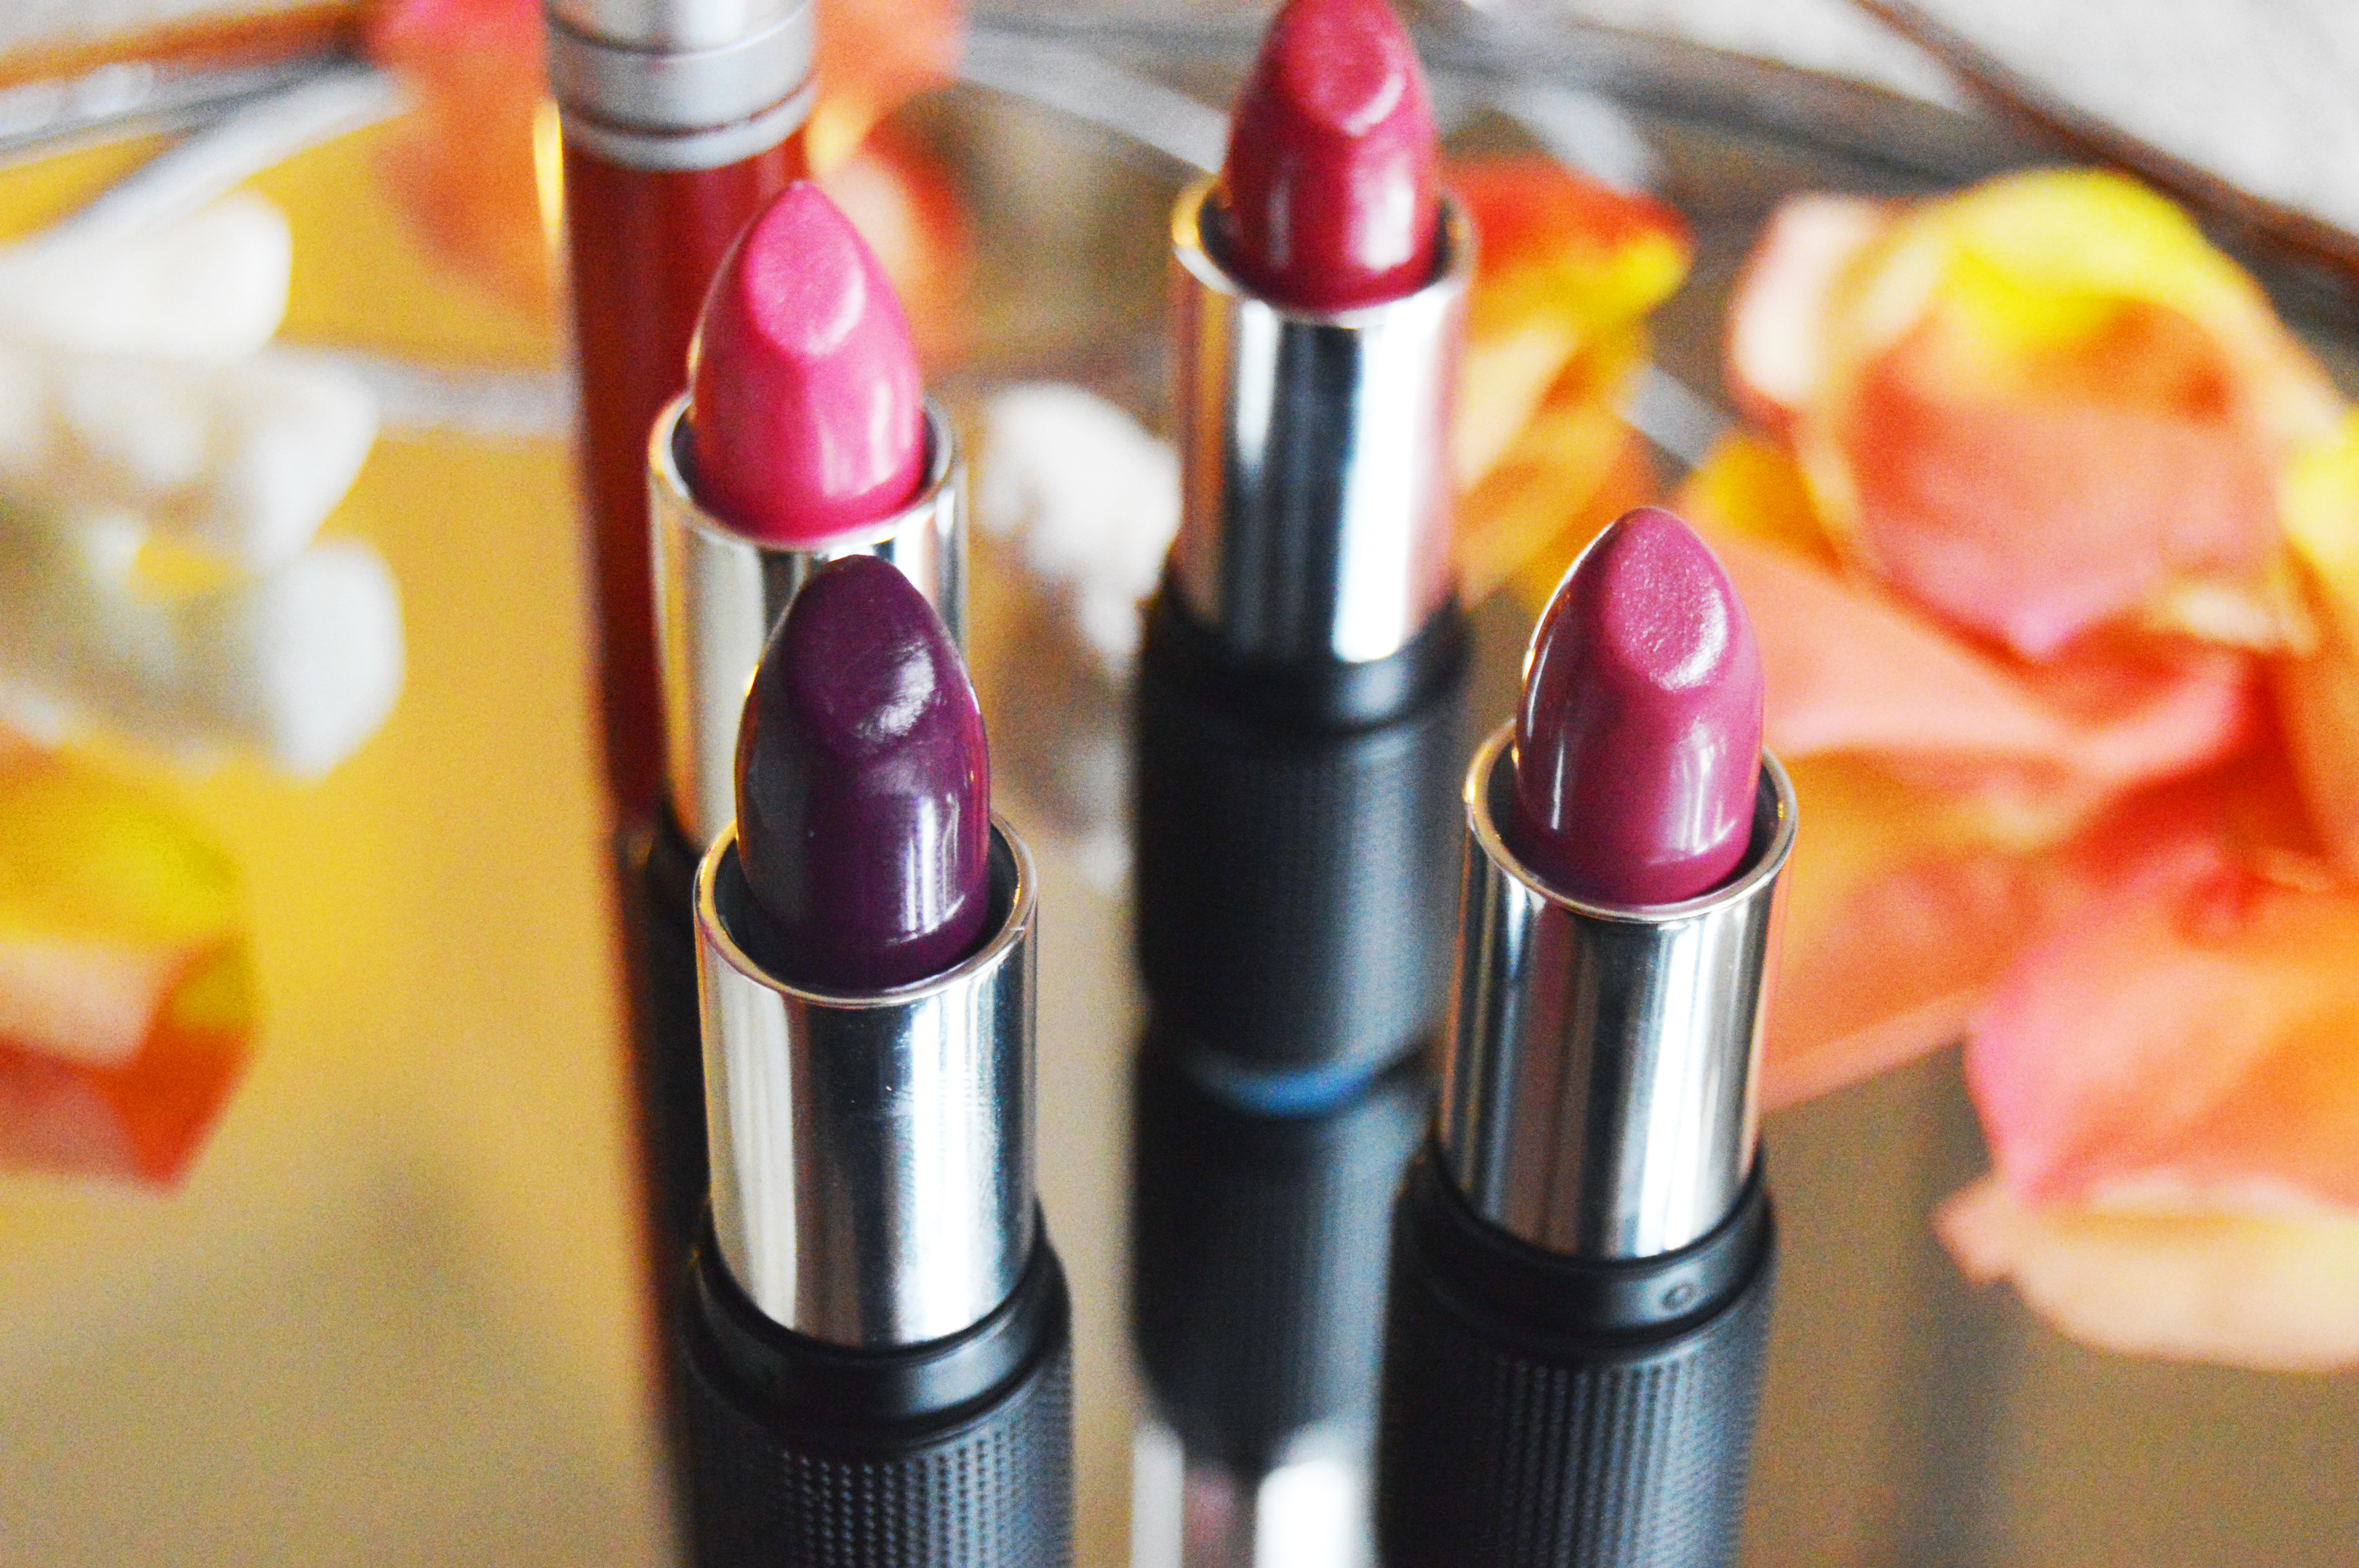 Wanna dupe for your MAC lipsticks? Win $100 giftcard to Red Apple Lipsticks! Girl, we got you!